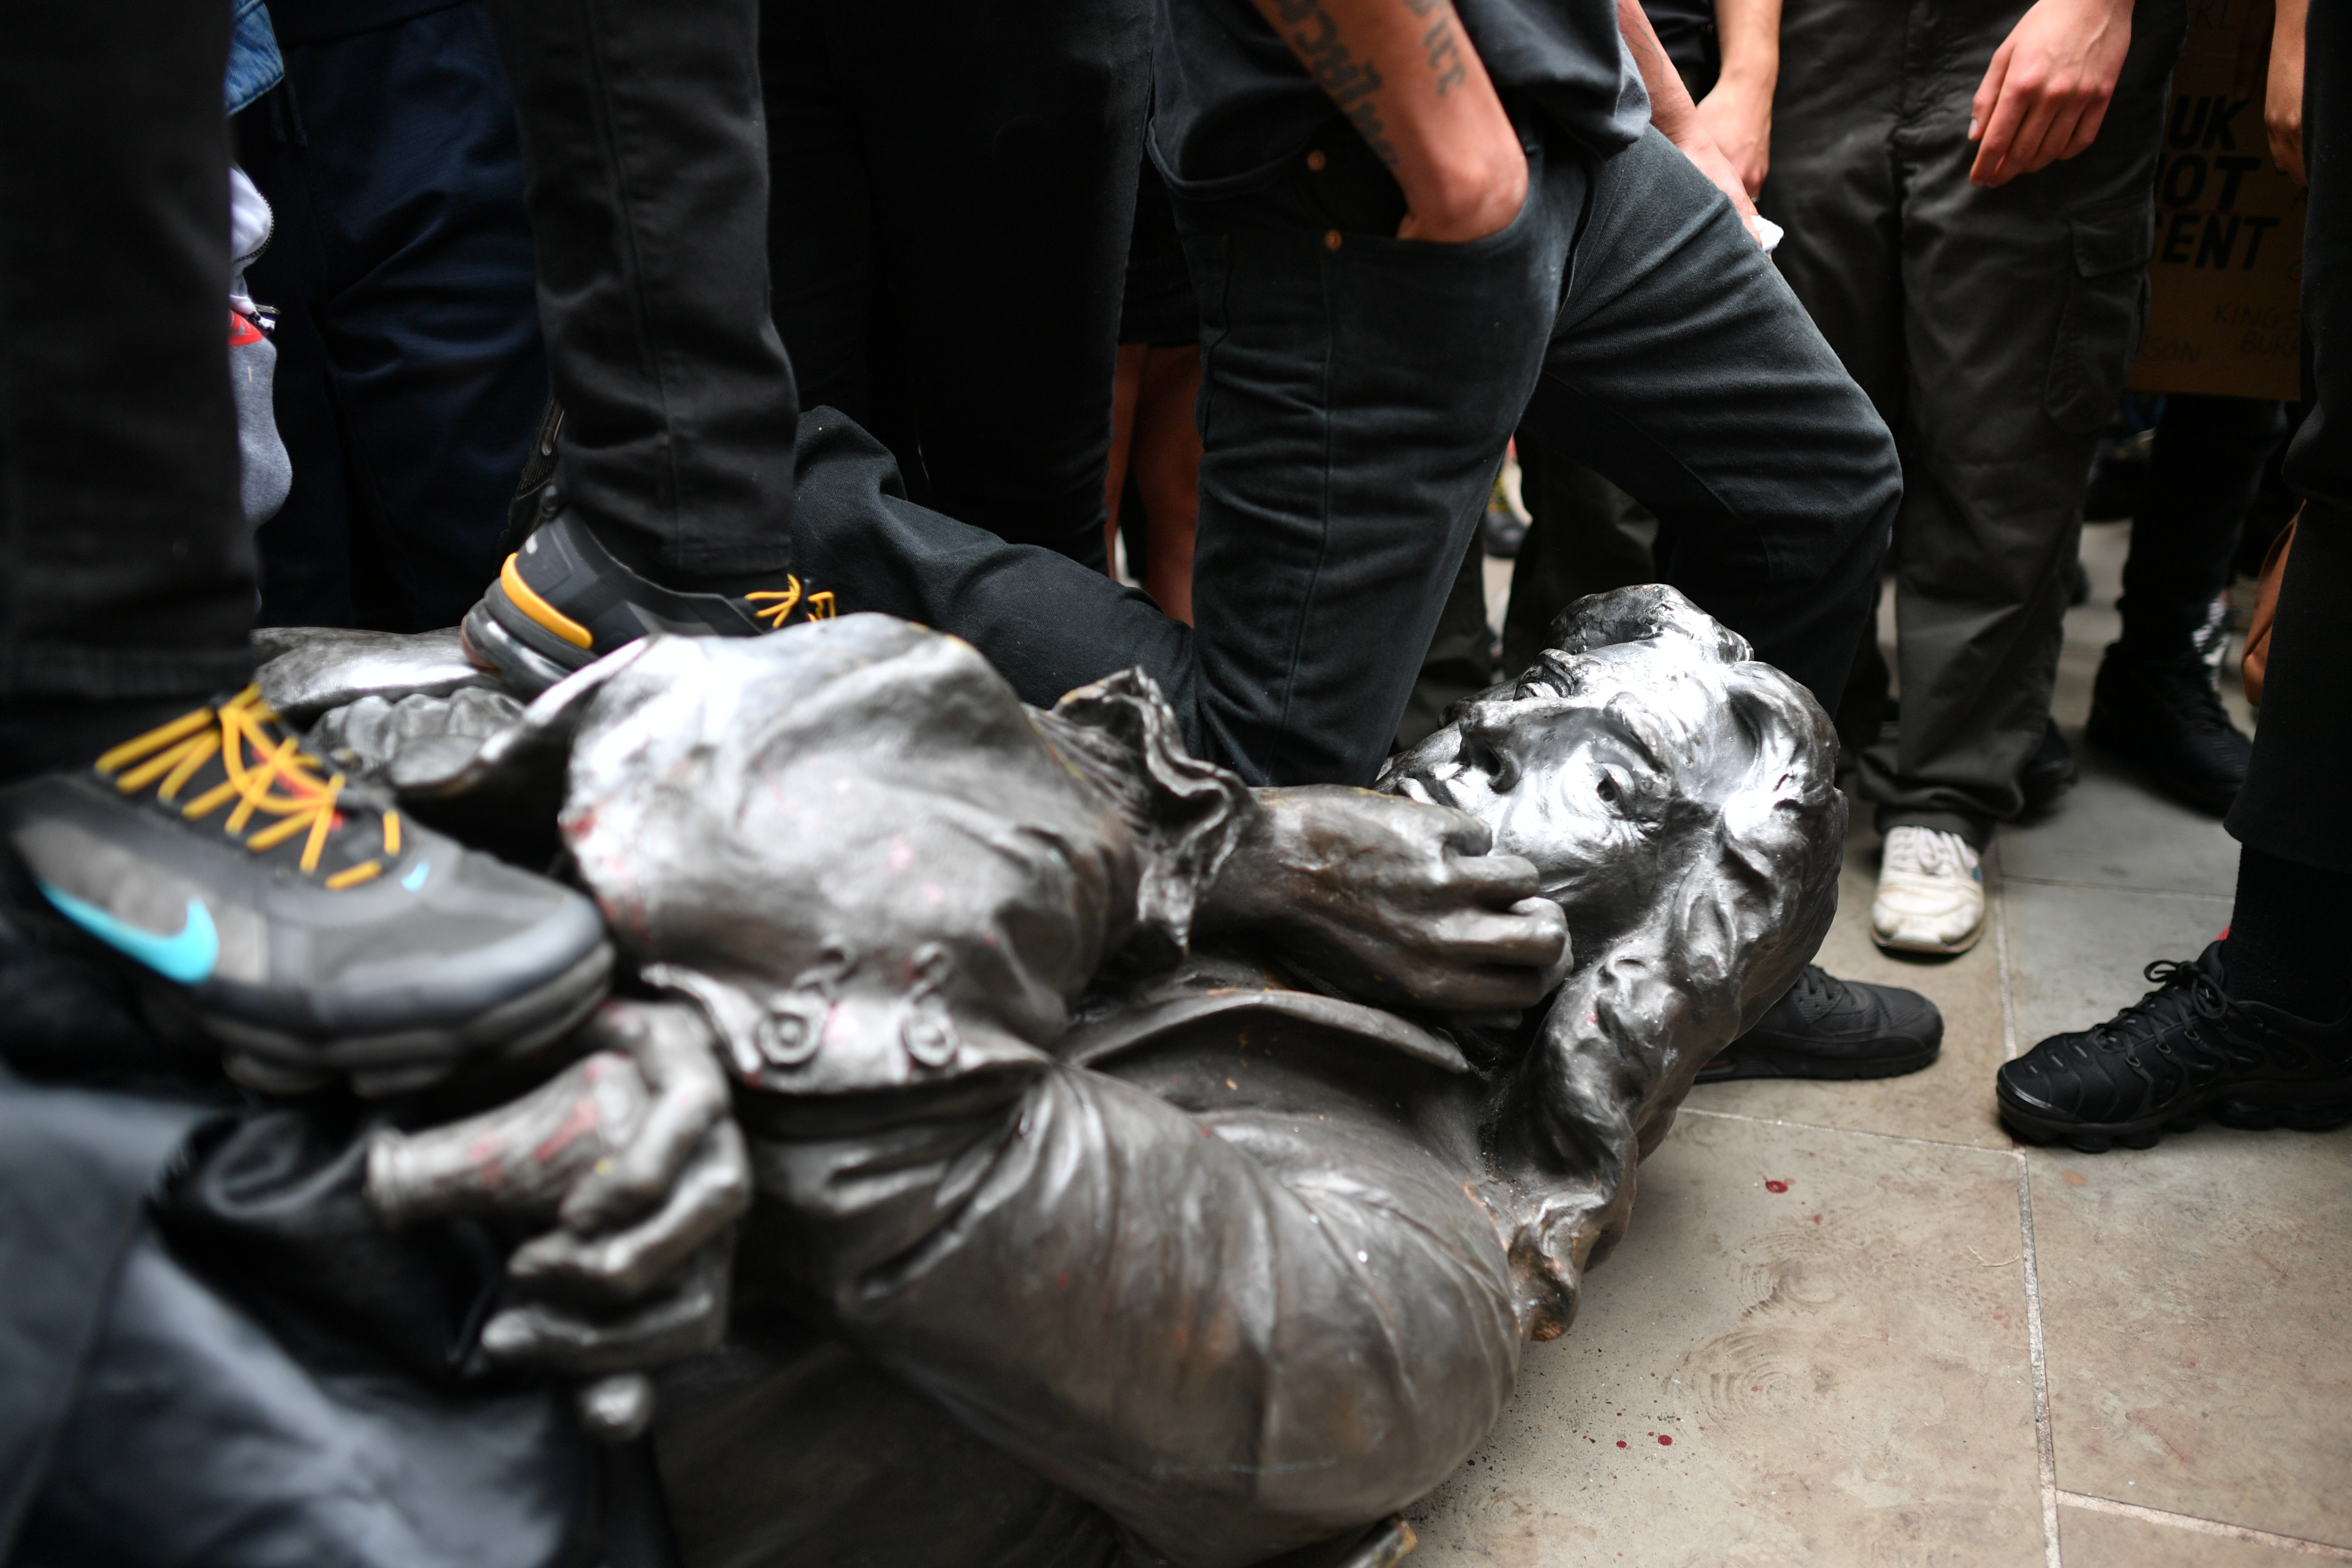 Protesters pull down a statue of Edward Colston during a Black Lives Matter protest rally in College Green, Bristol, in memory of George Floyd who was killed on May 25 while in police custody in the US city of Minneapolis.